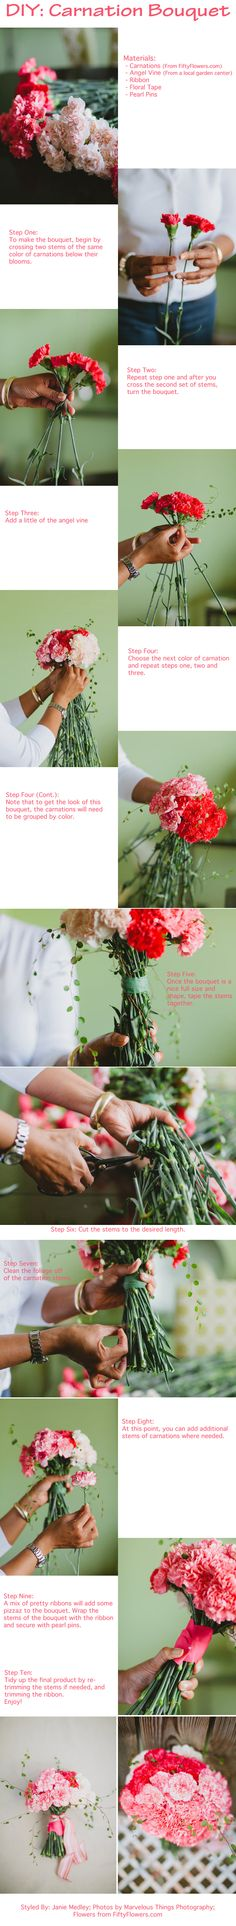 DIY Carnation Bouquet - Learn How To create your own gorgeous wedding bouquet using wholesale carnations from FiftyFlowers.com